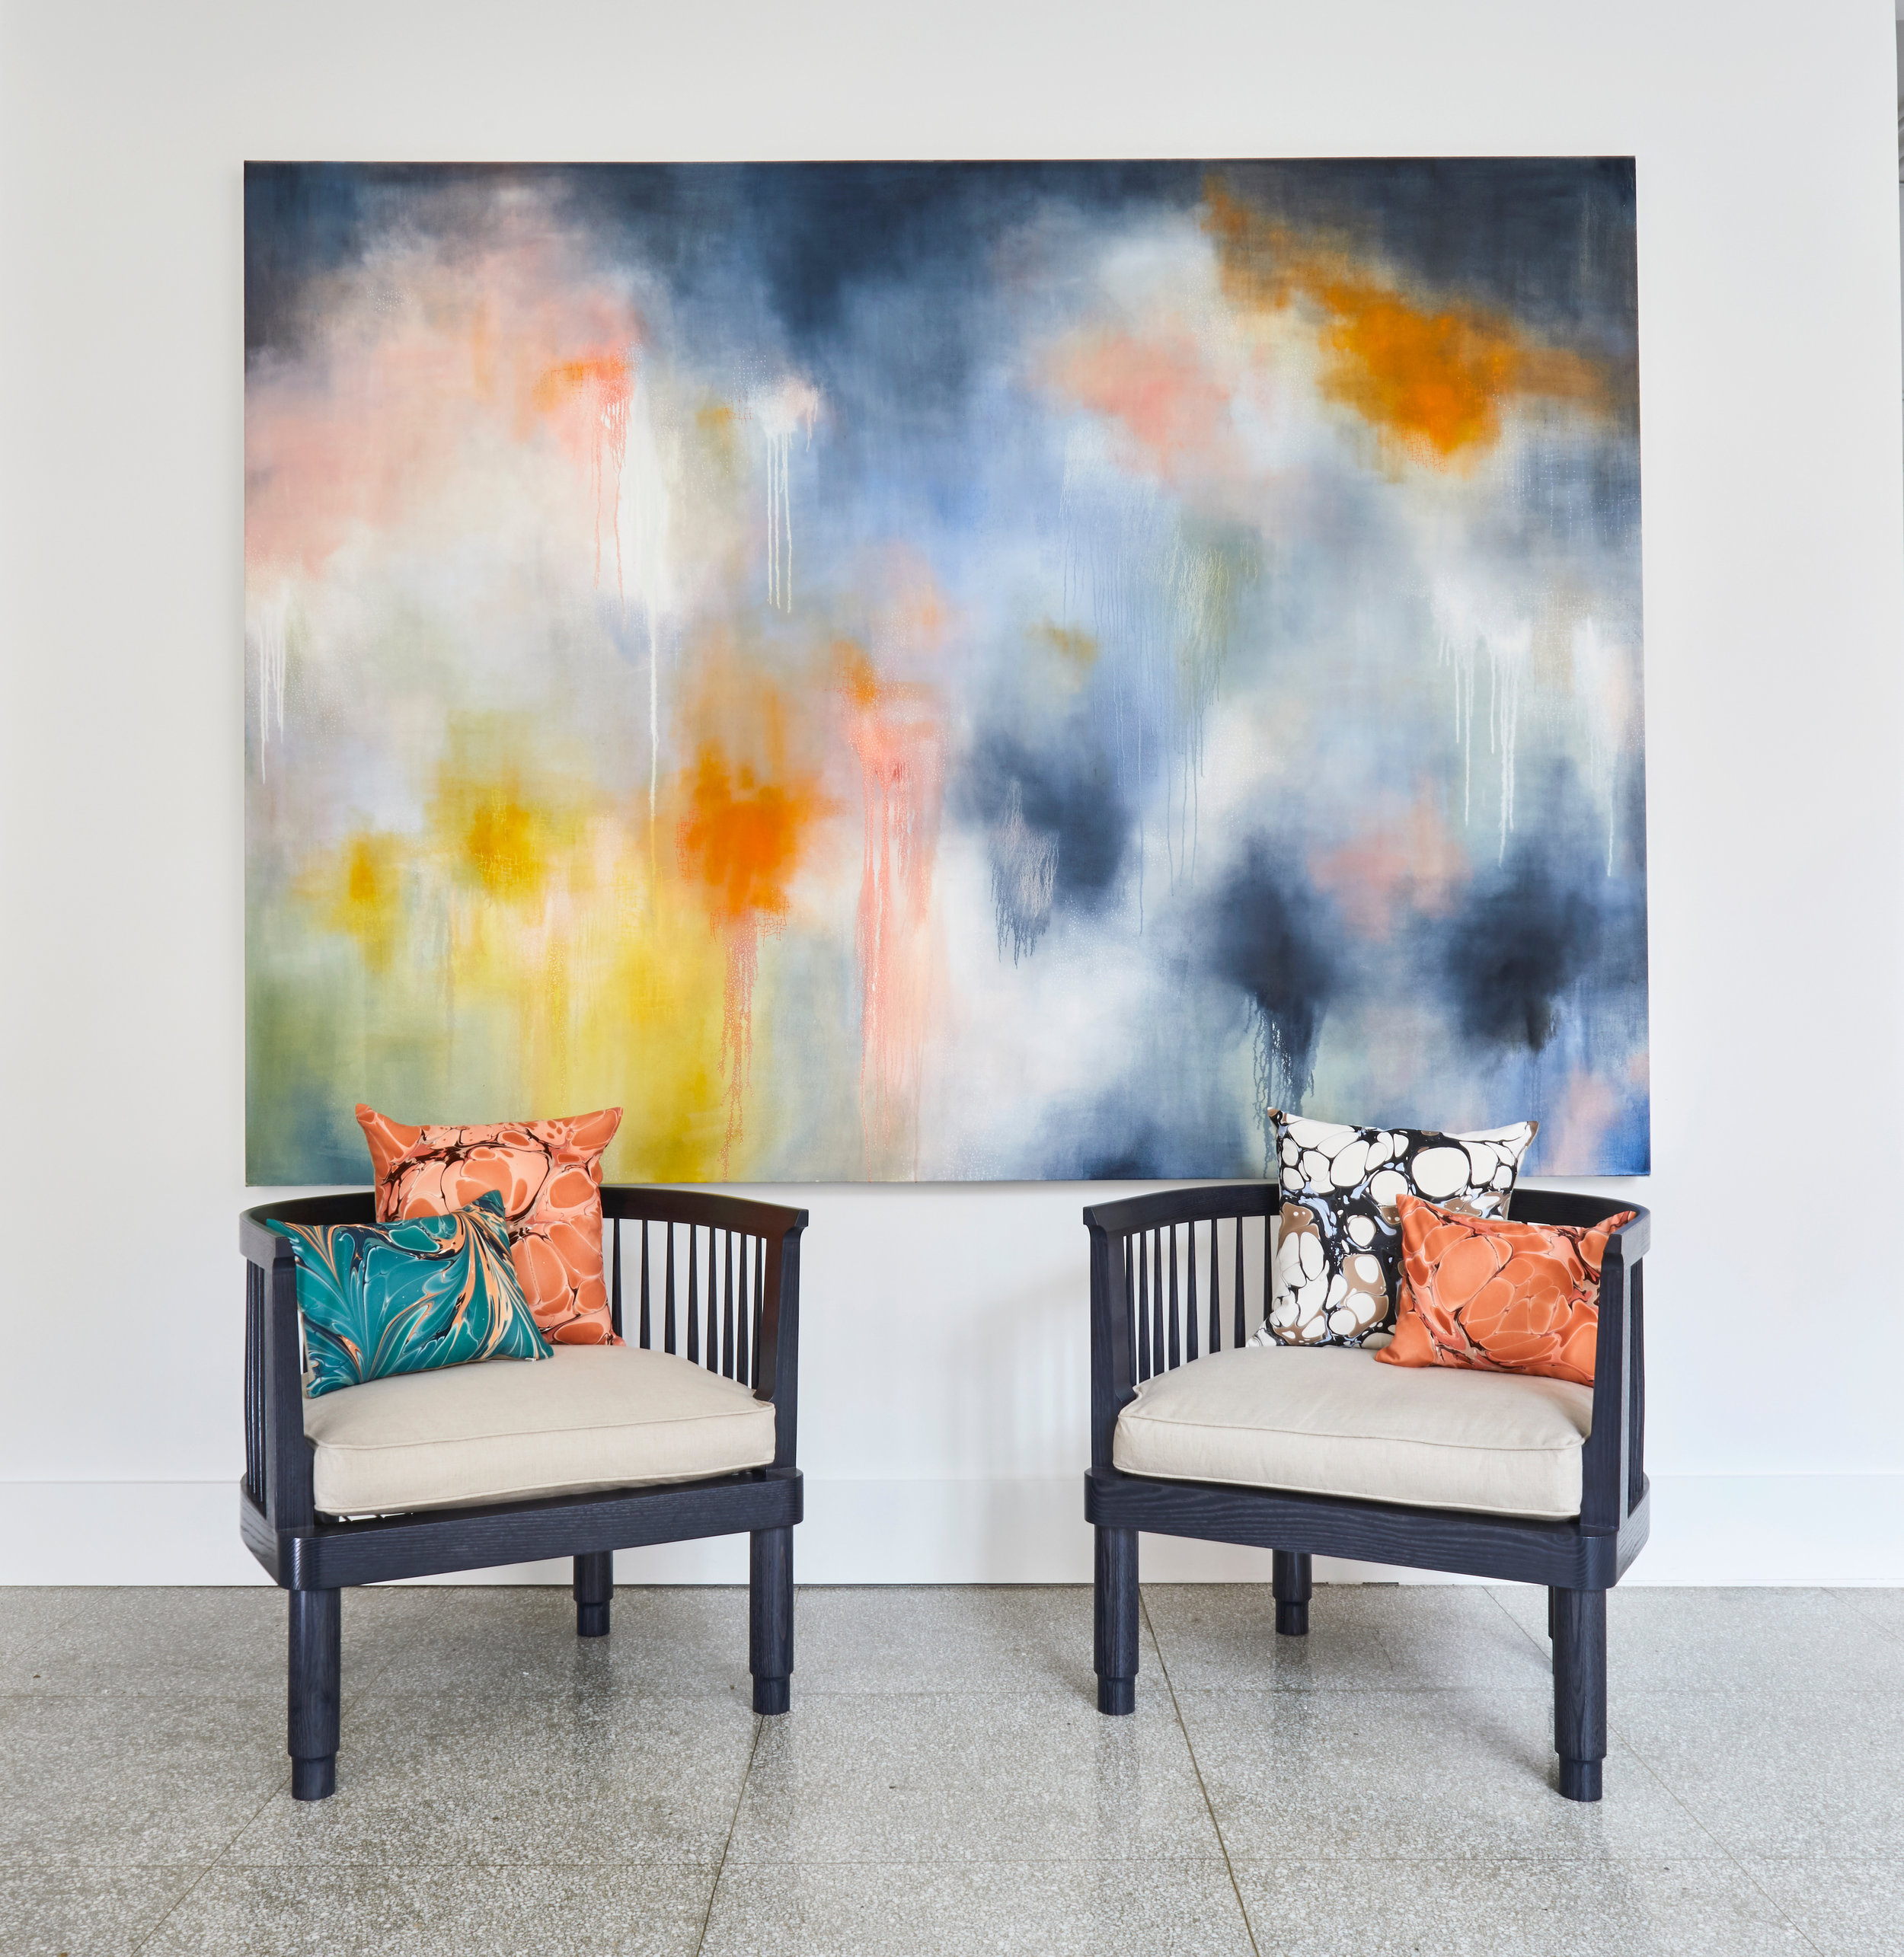 Phaedon's Desire at Salon Design 126 Charles Street Boston MA 02114 Through August 25 2019    Photo credit Angel Tucker